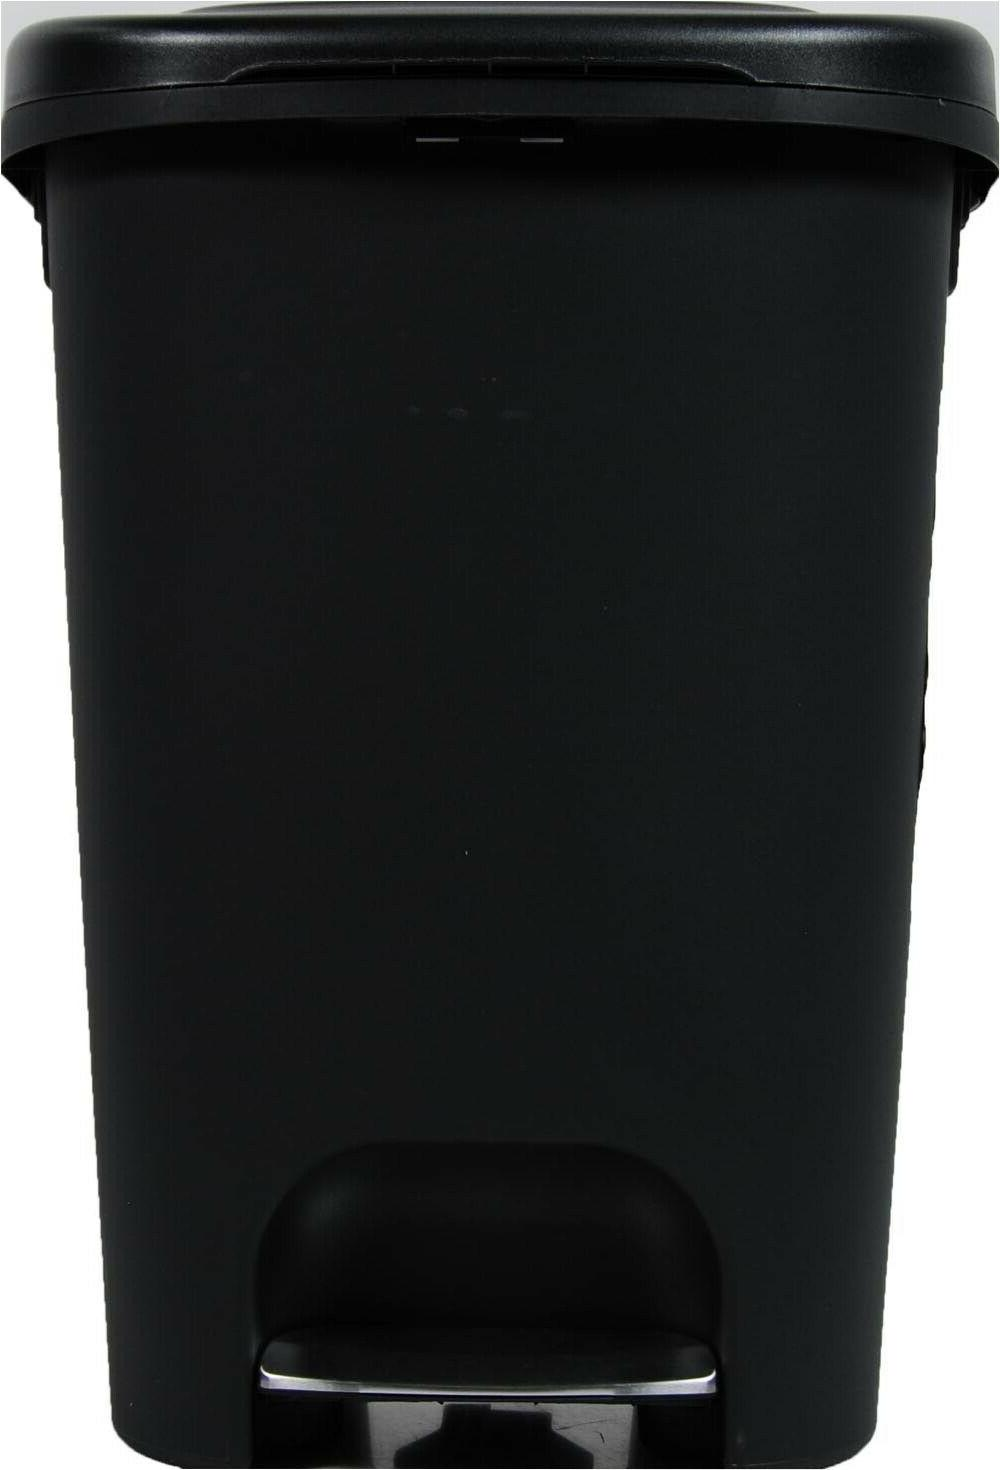 Large Can 13 Garbage Can Black Plastic Can Step